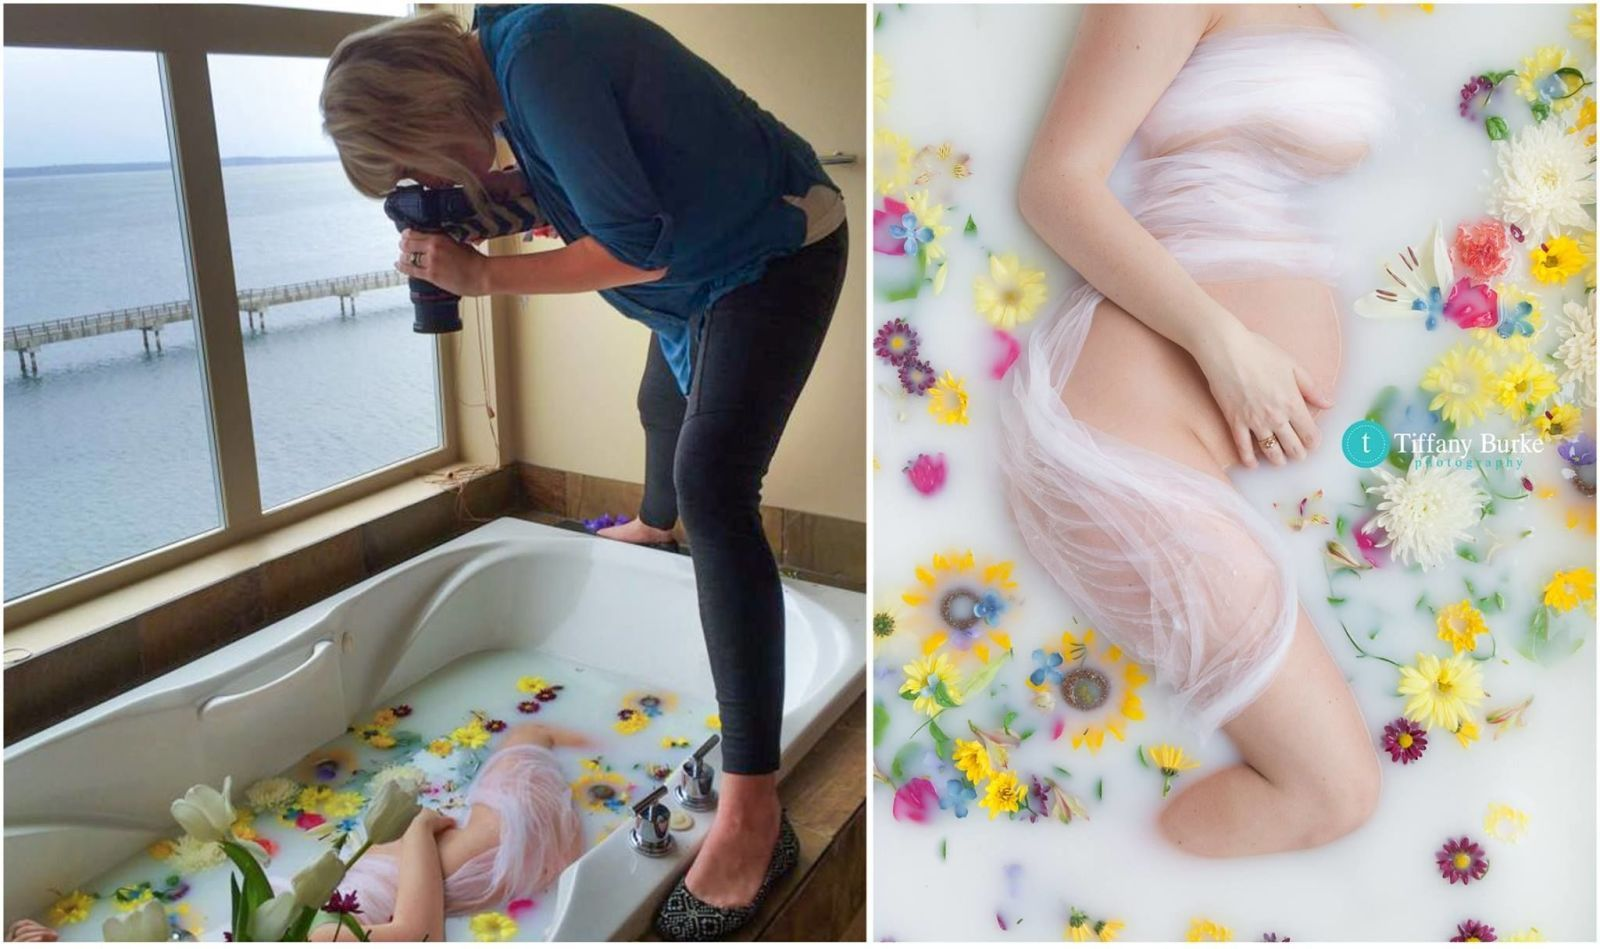 Milk bath photography is the dreamiest maternity shoot trend on pinterest womansday com